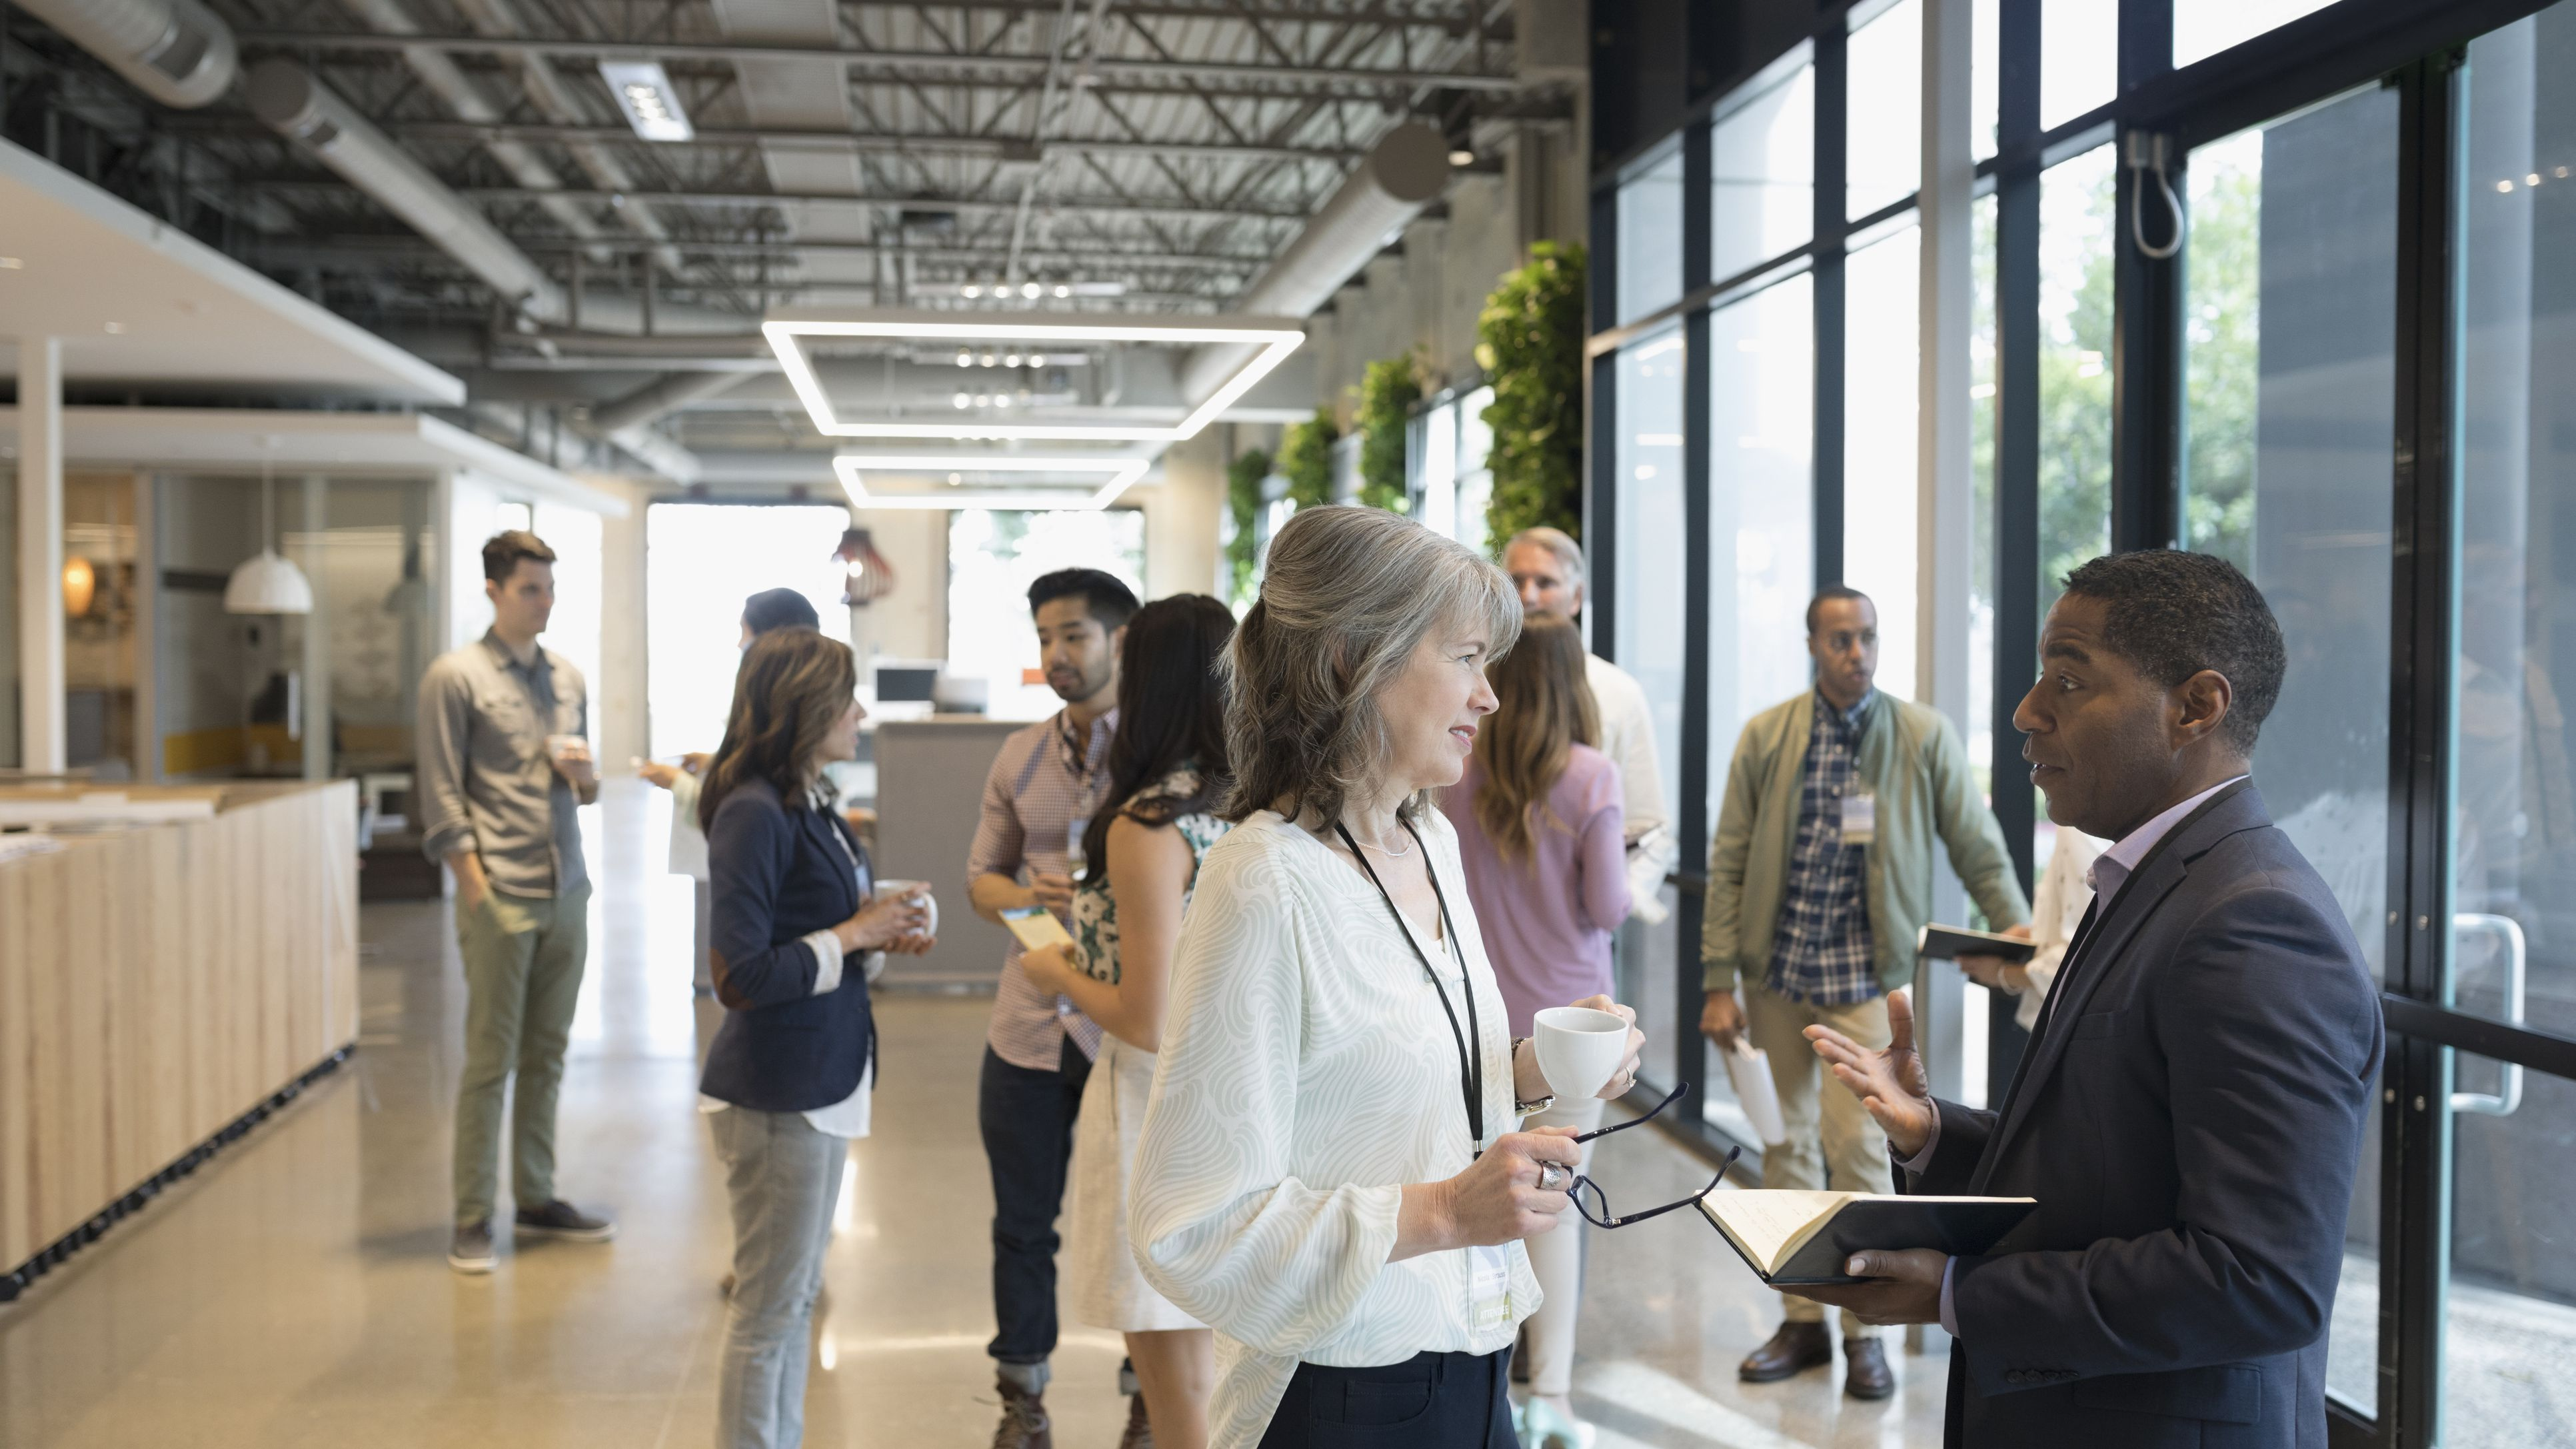 How to Use Networking to Find a Job